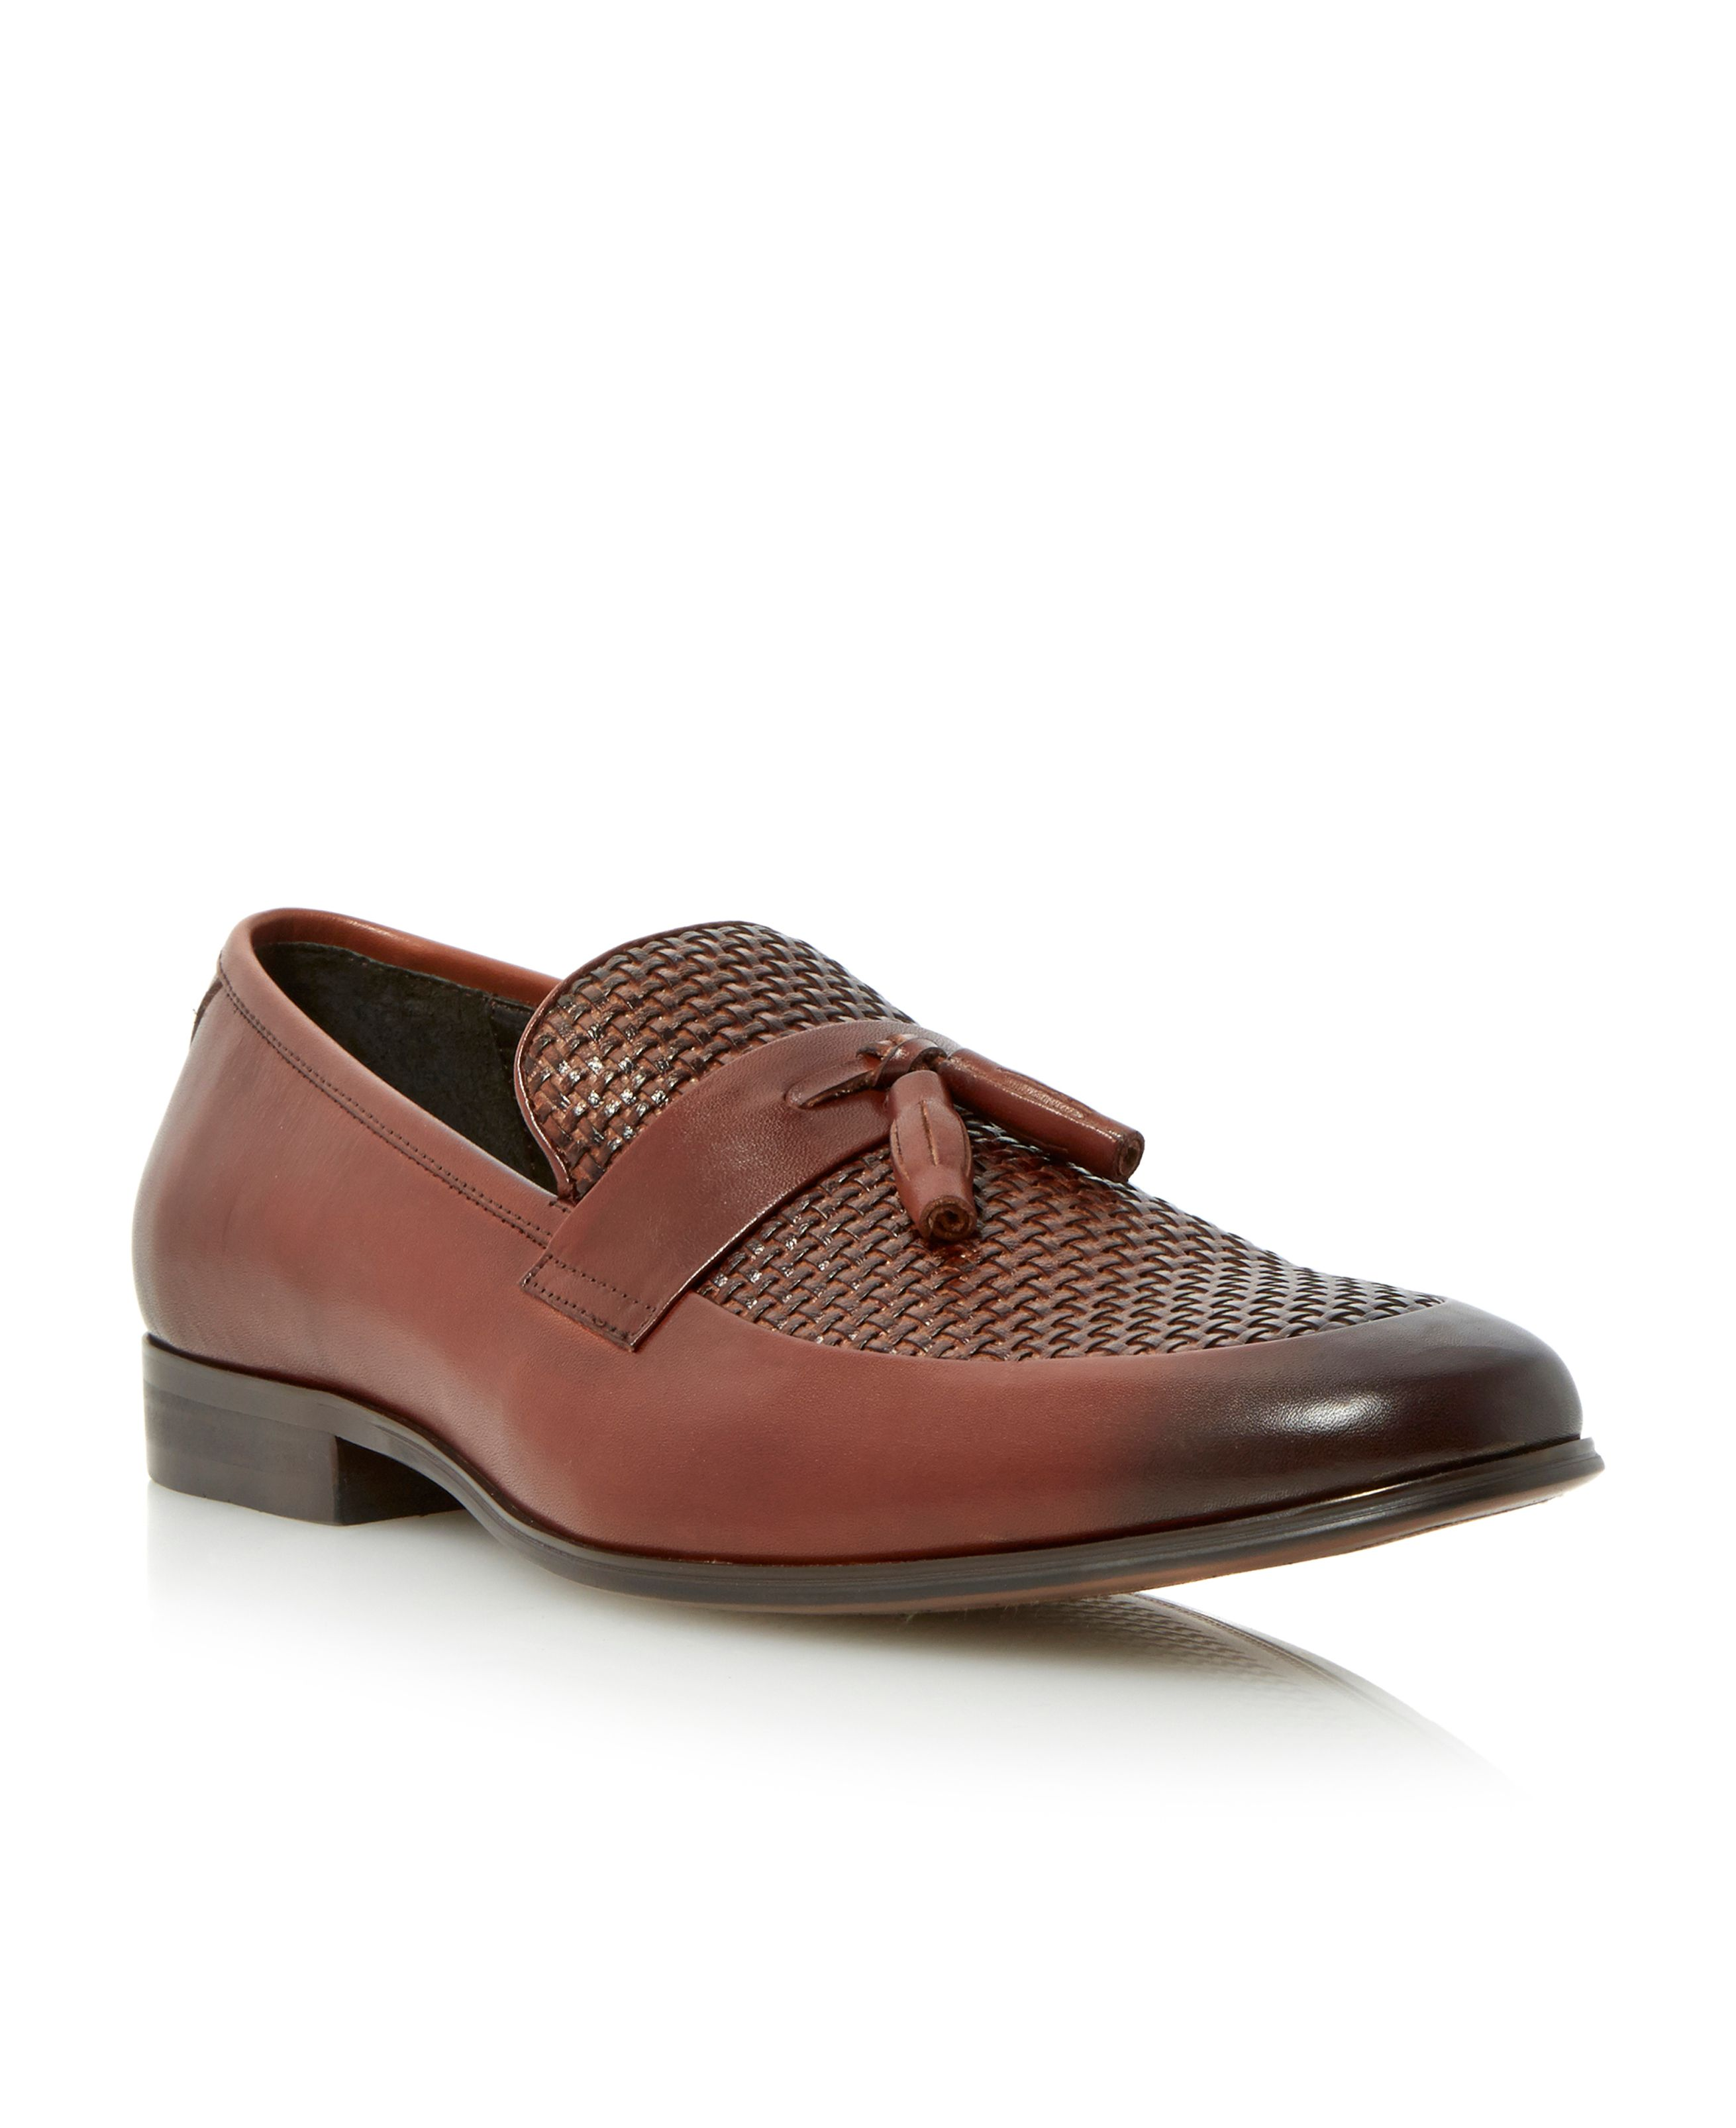 Applause weave tassel loafers